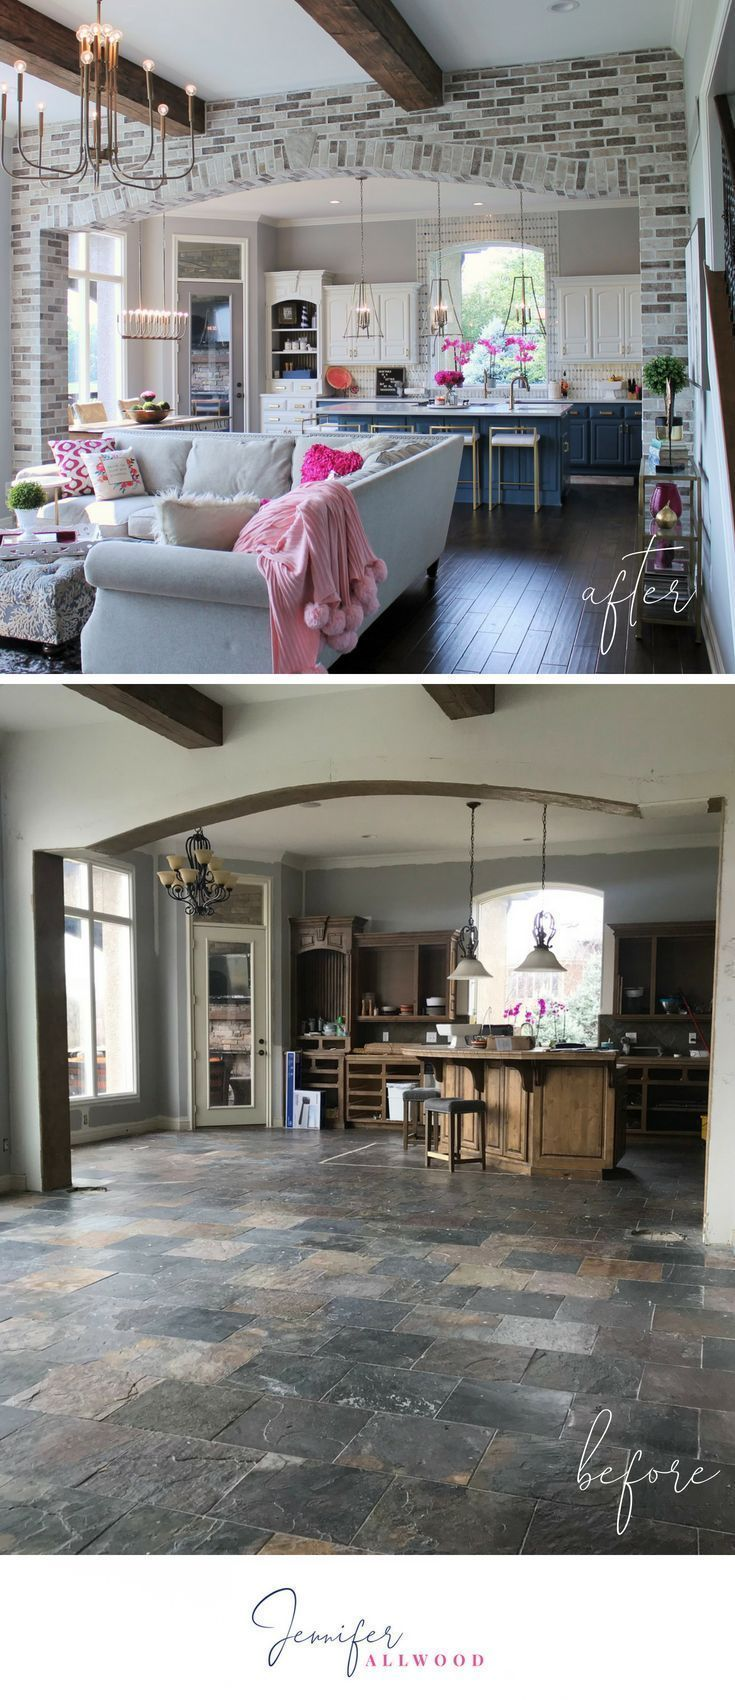 Ideas : Interior Archway before and after Kby Jennifer Allwood Brick Archway Interior Makeover light brick archway in living room, Brick Archway Interior Makeover, Brick Archway Designs, Brick Arches inside Home. light brick archway in living room, brick interior